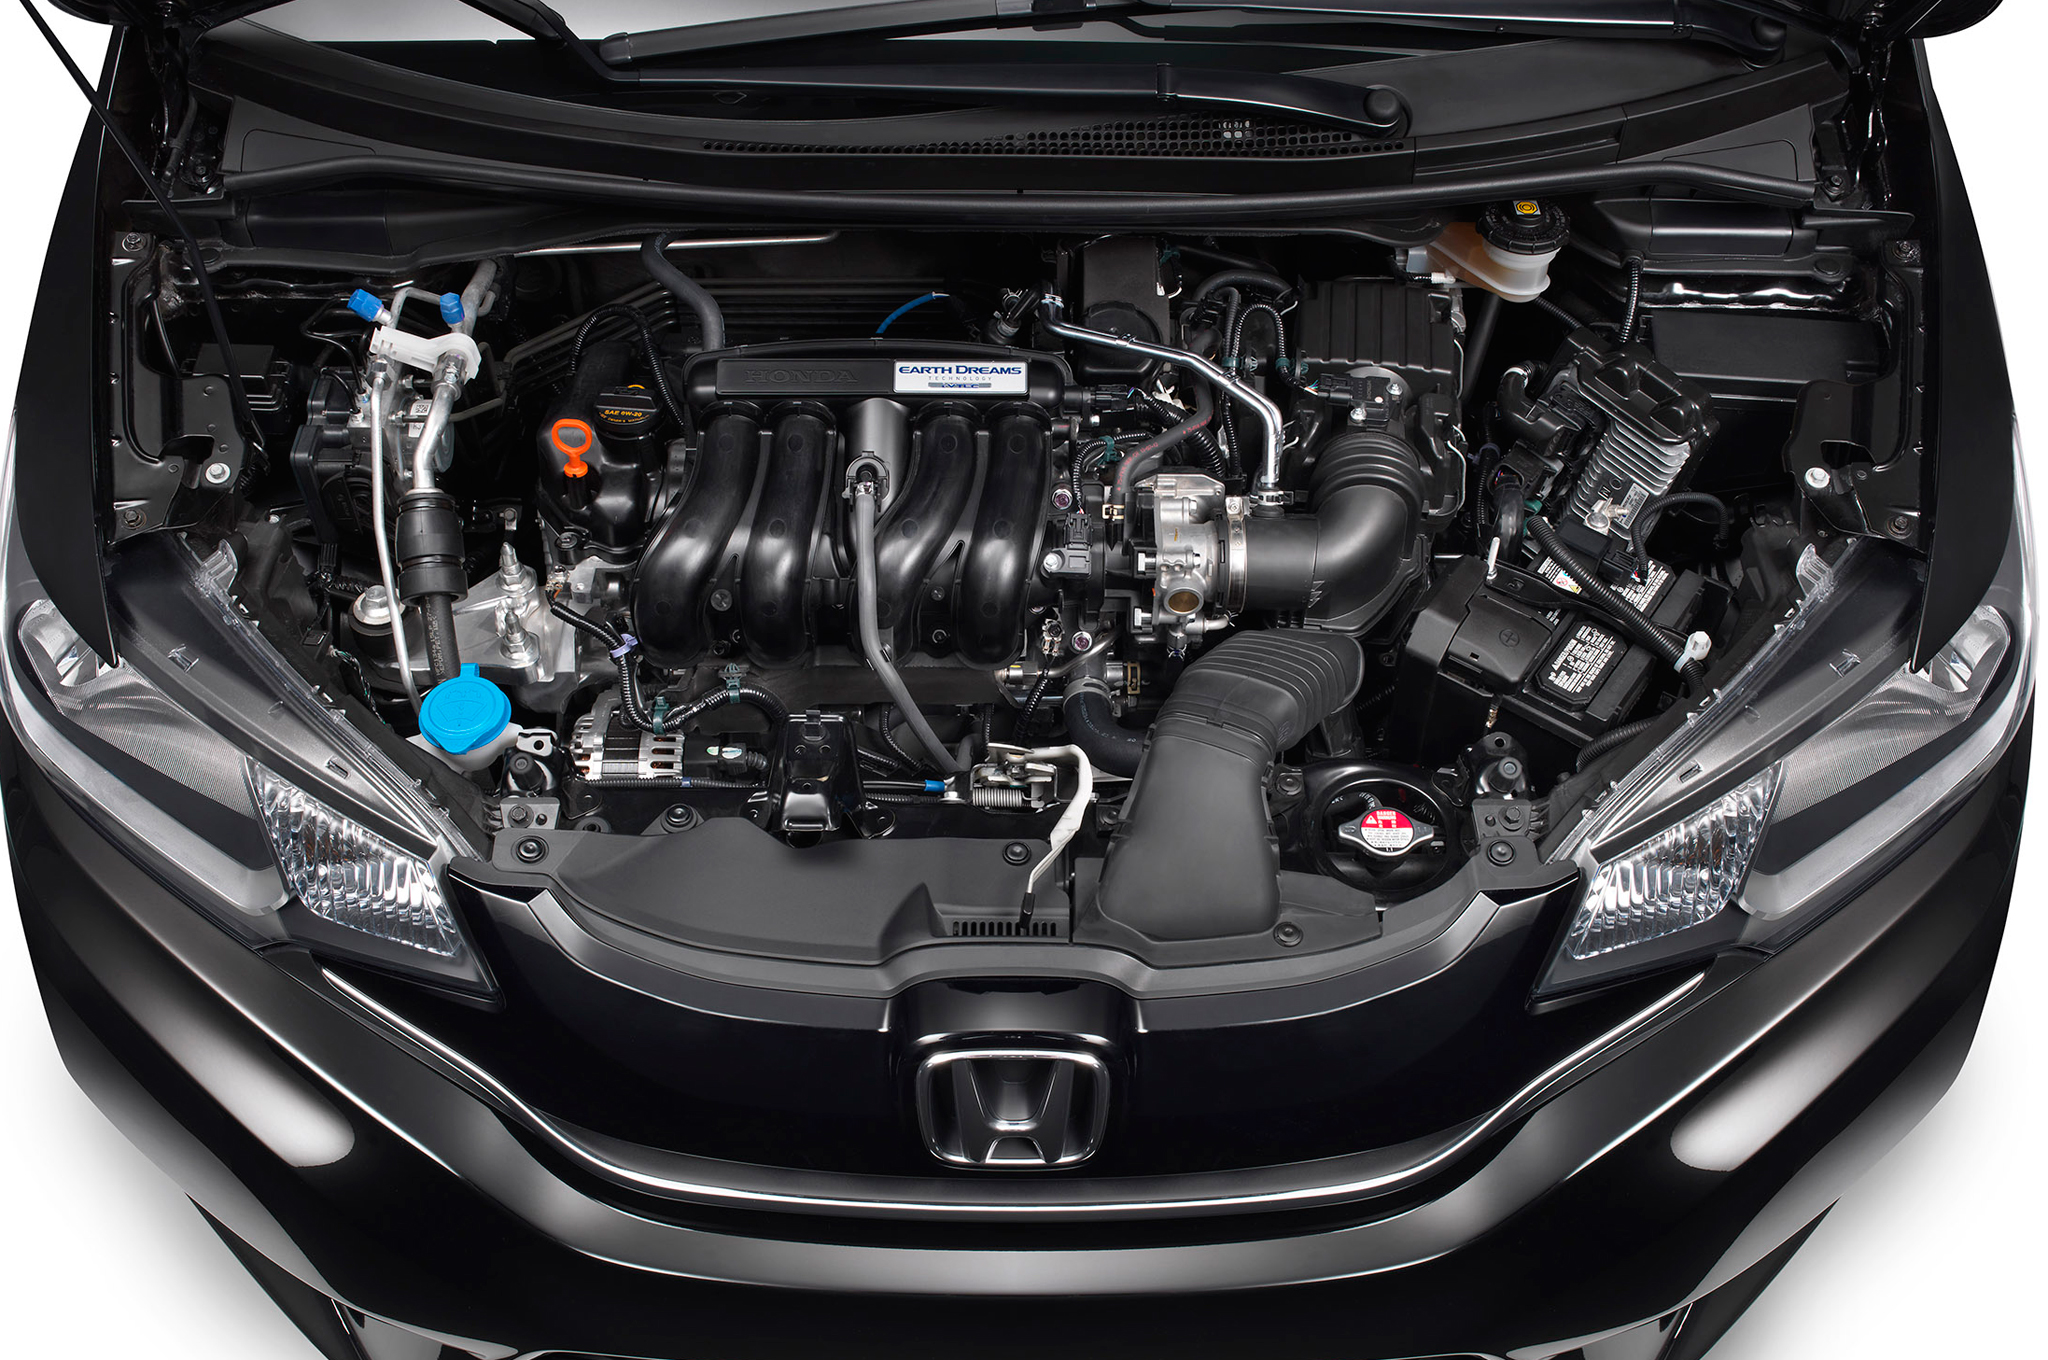 2015 Honda Fit Engine Profile (Photo 12 of 16)